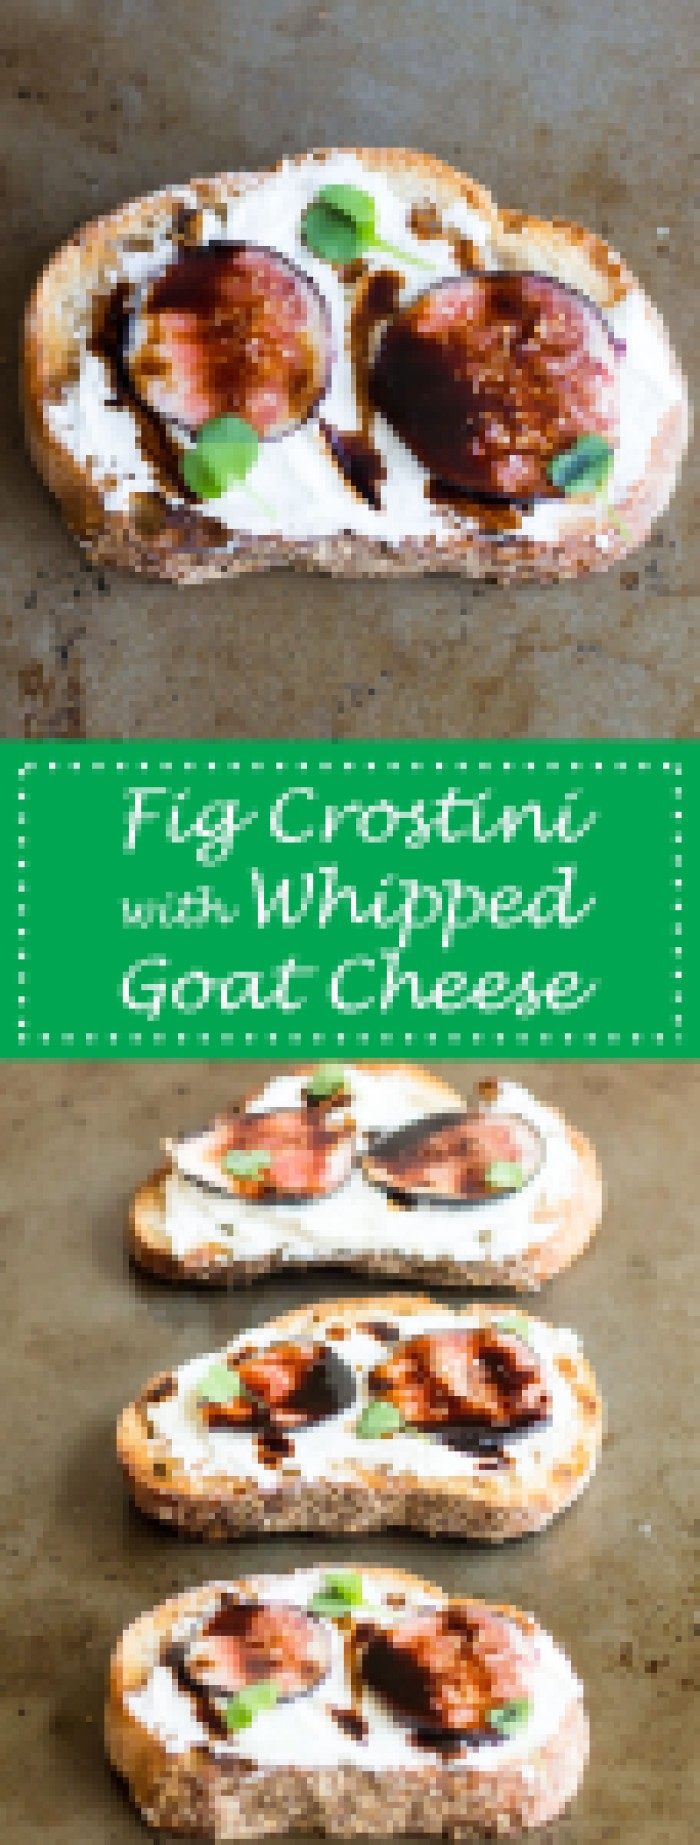 Fig Crostini with Whipped Goat Cheese